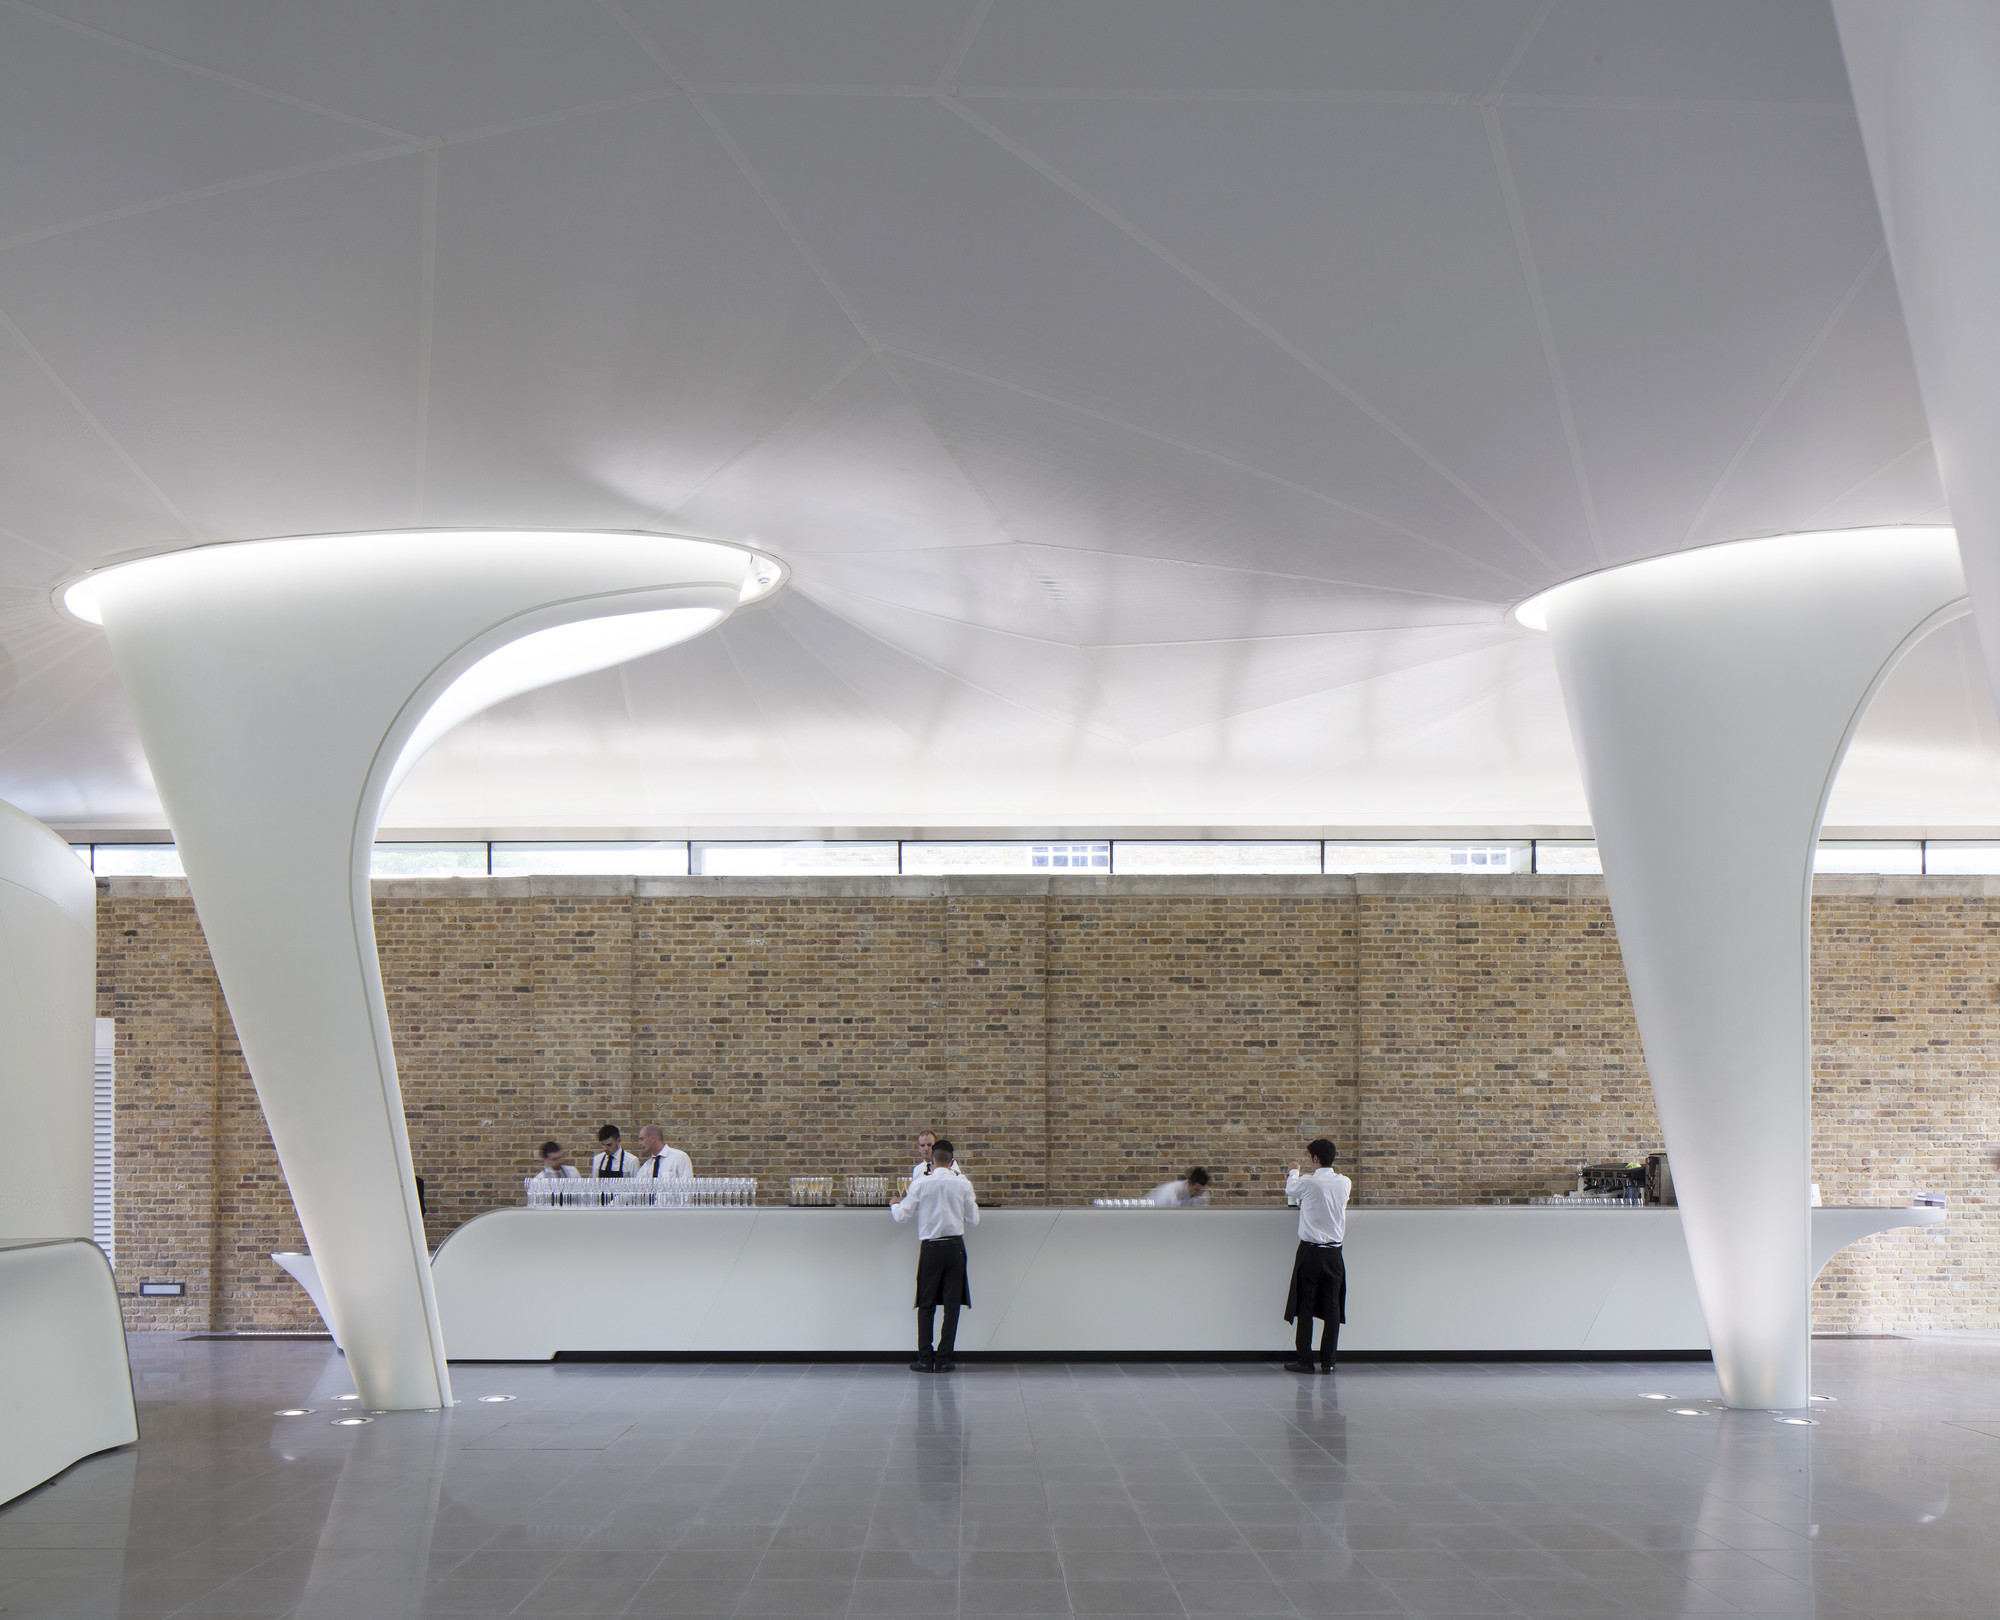 Gallery Of The Serpentine Sackler Gallery Zaha Hadid